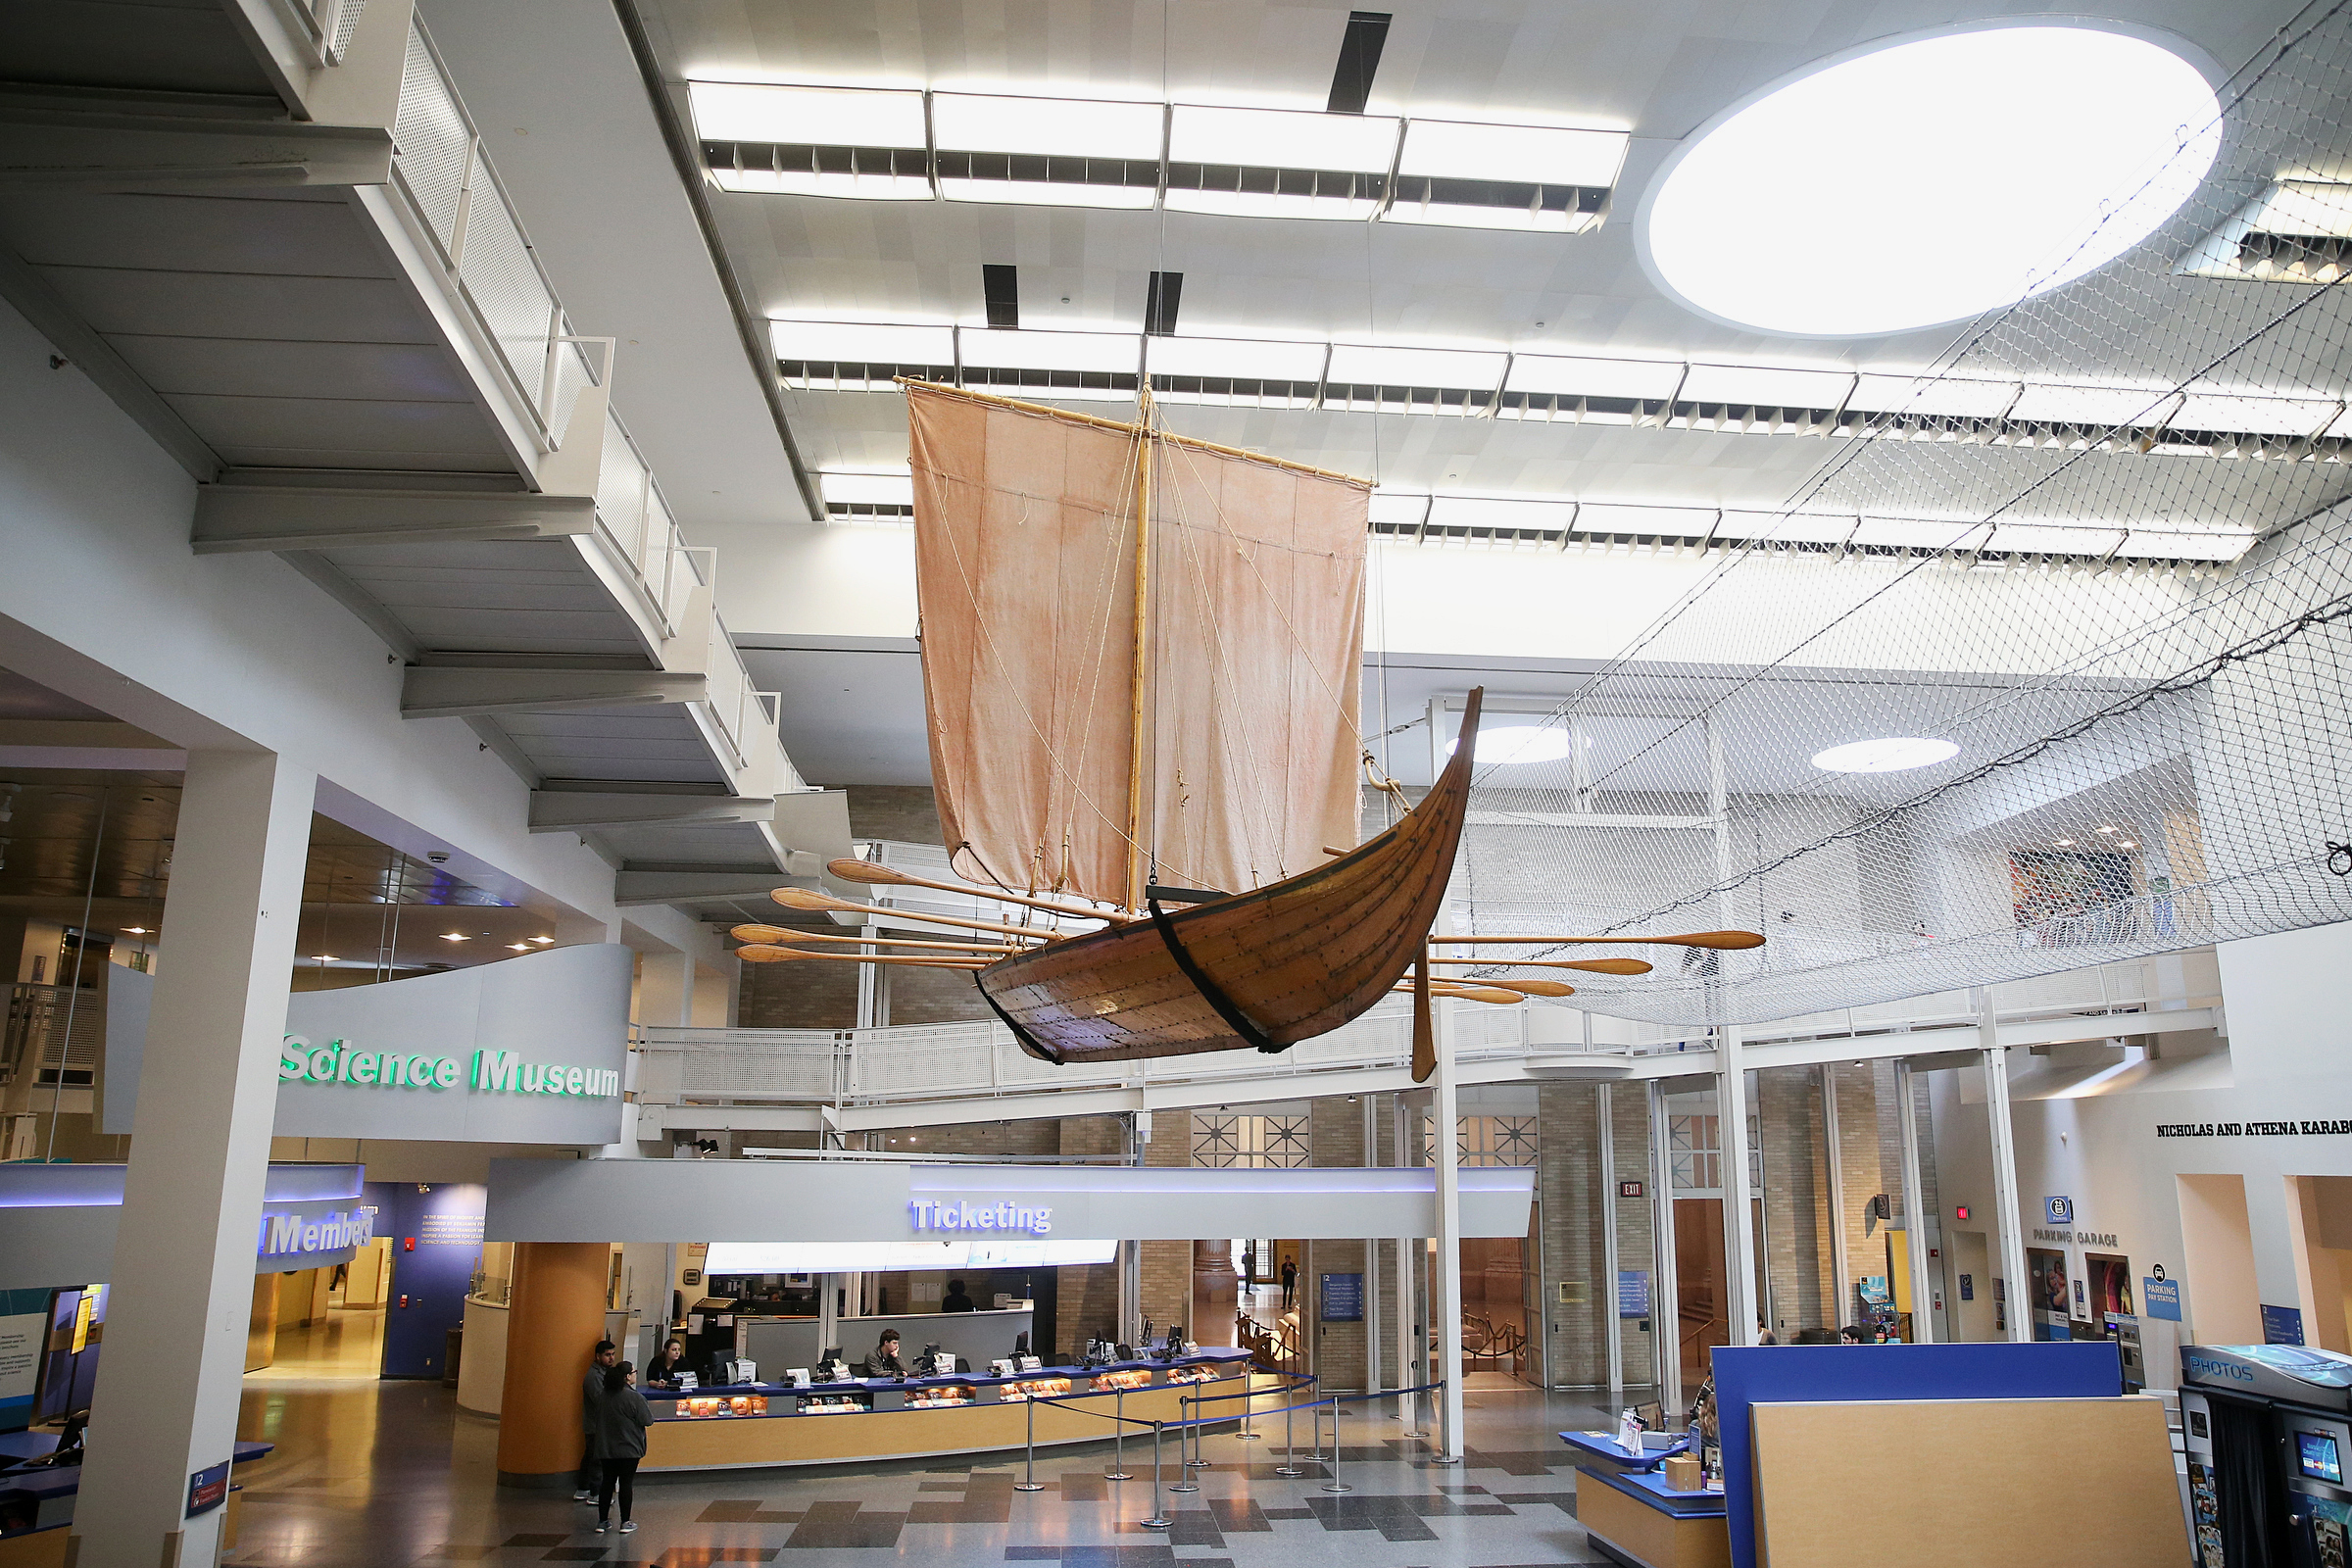 A reconstructed Viking ship is pictured in the atrium as part of the Franklin Institute´s upcoming exhibit about Vikings, in Philadelphia on Tuesday, Oct. 9, 2018. The exhibit opens Saturday.